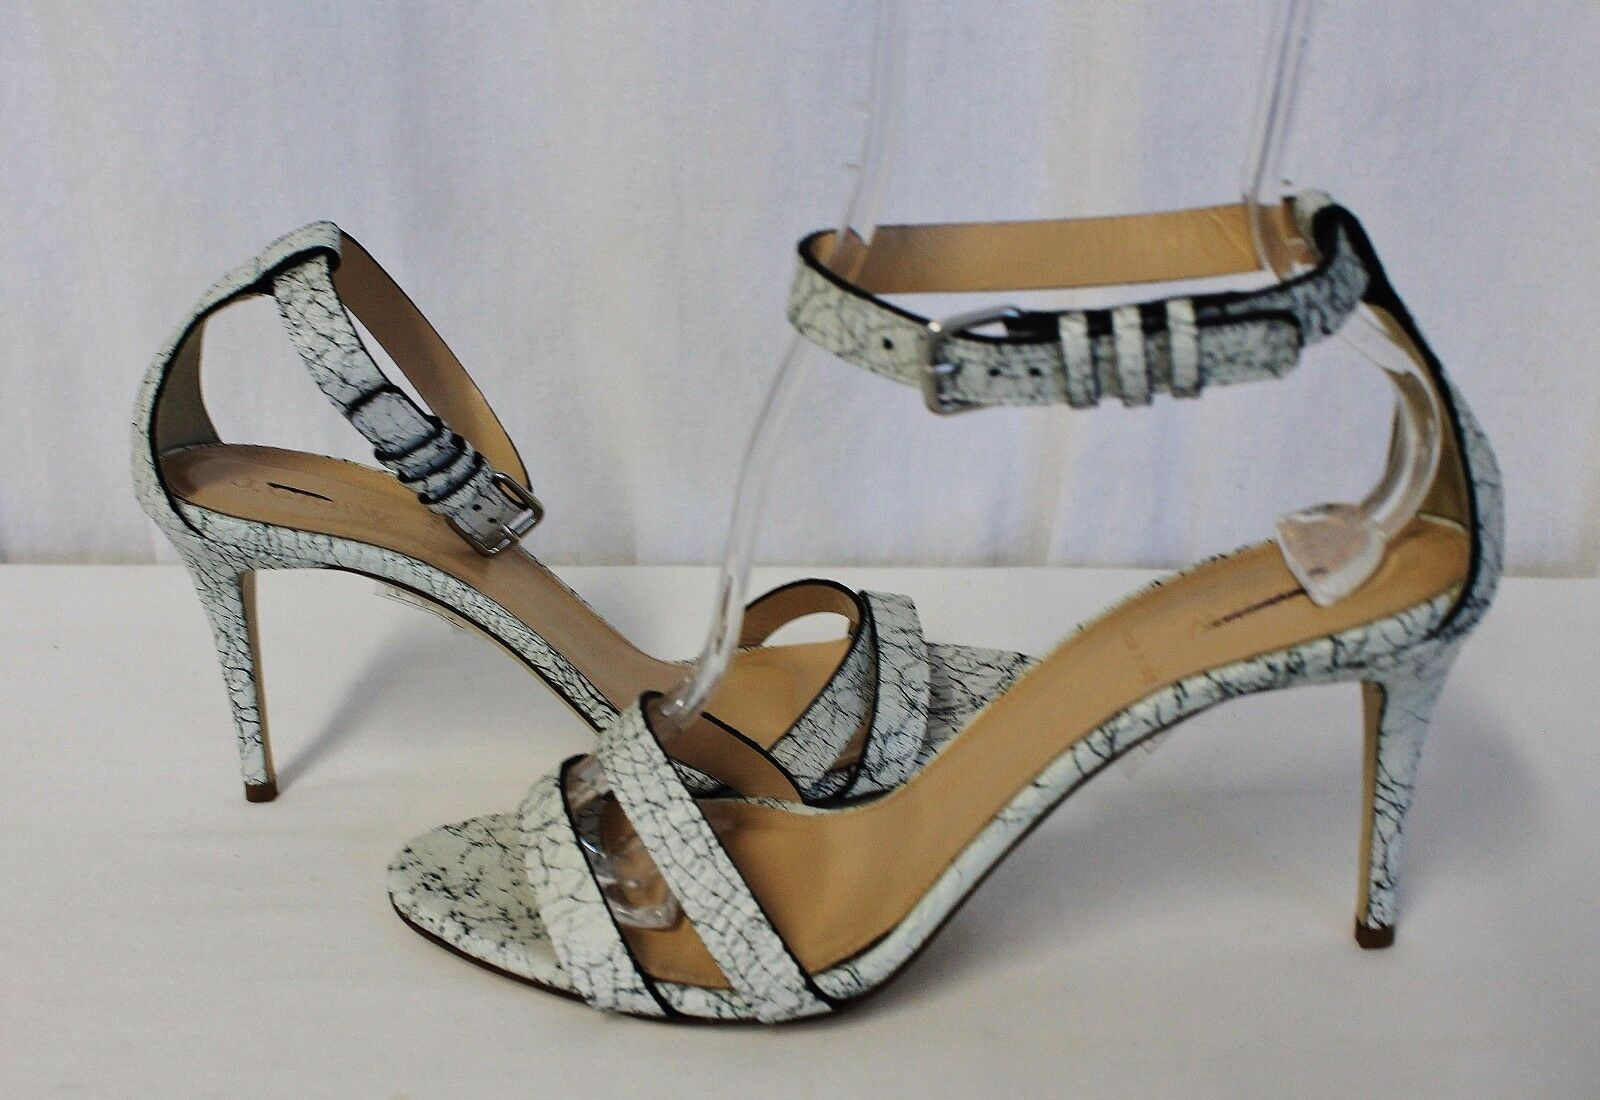 J CREW CRACKLED LEATHER ANKLE-STRAP HIGH-HEEL SANDALS Weiß SIZE 8.5 C1450